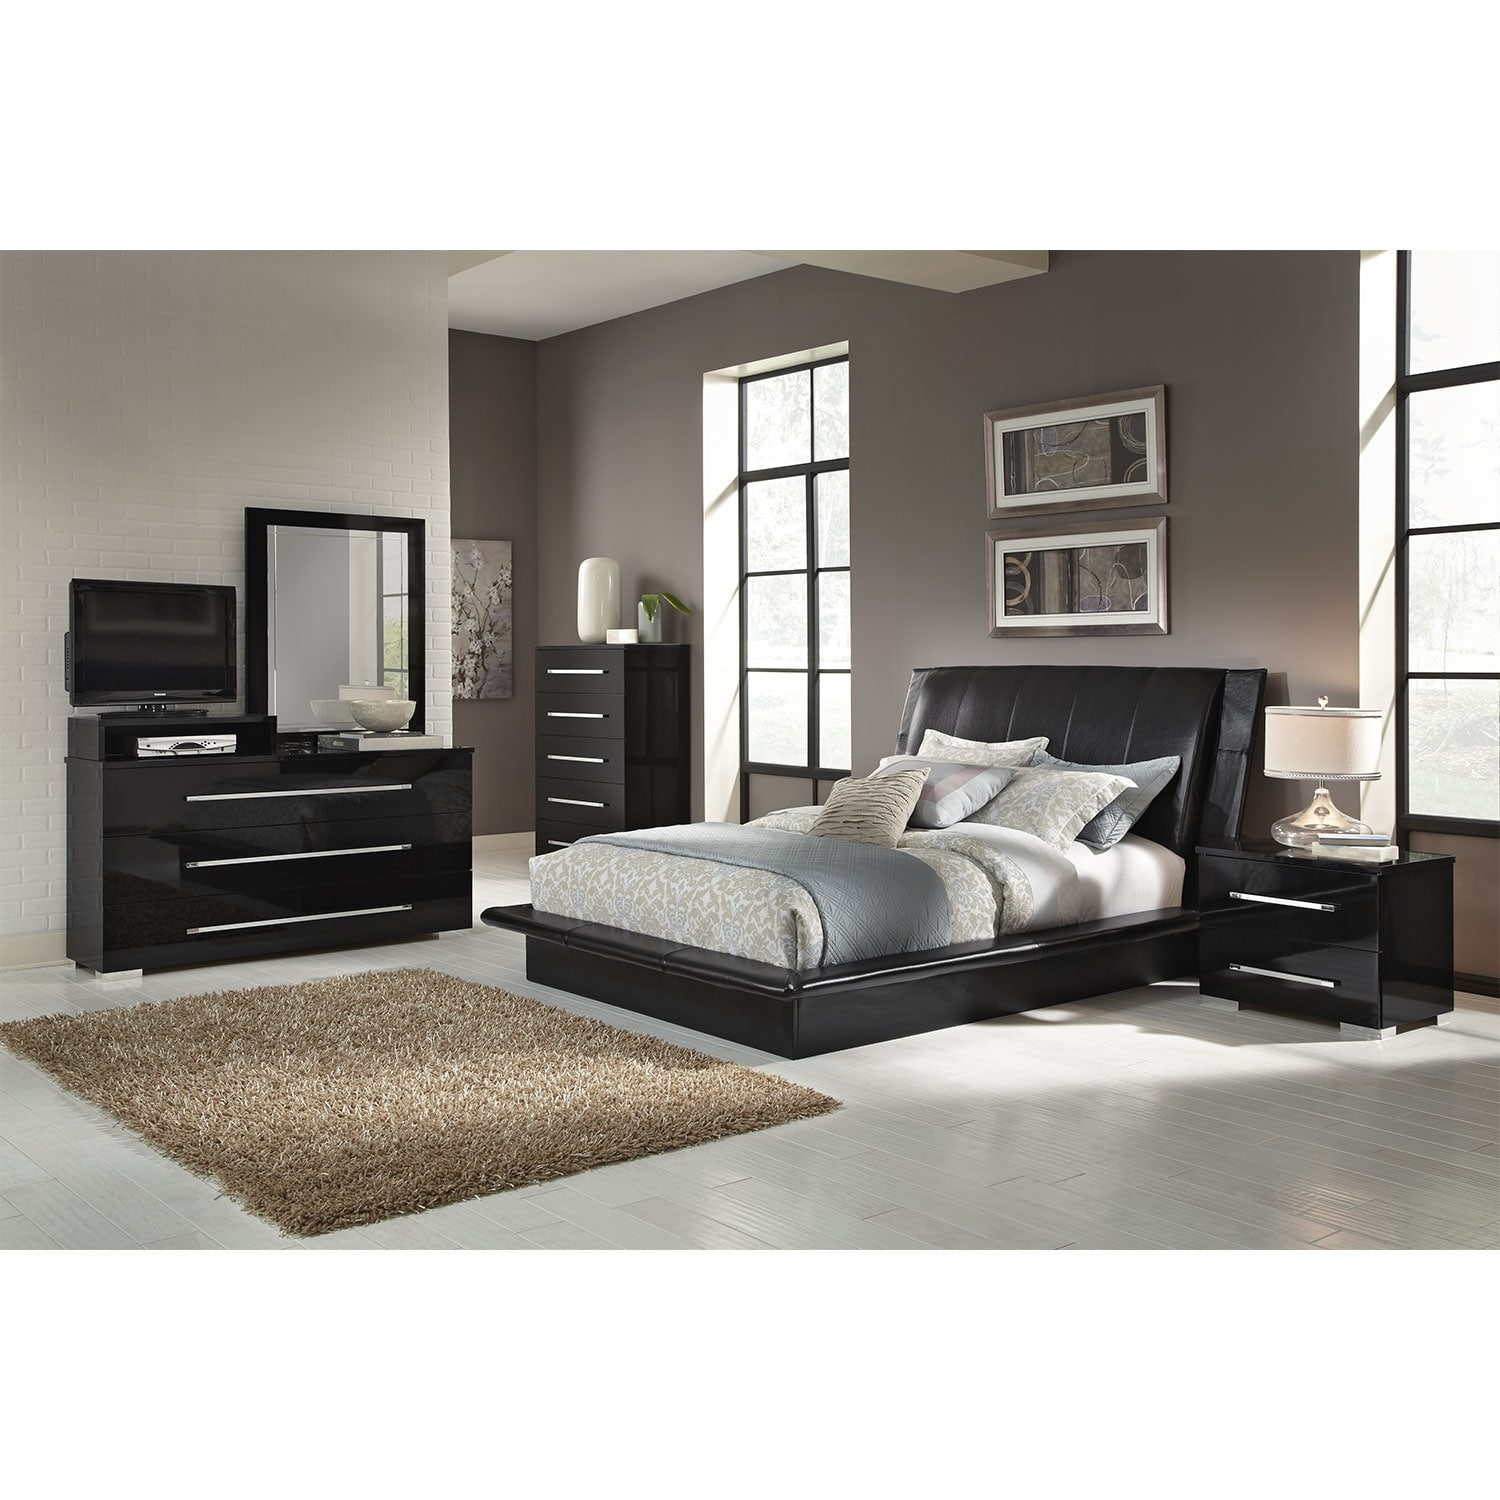 Click to change image. Dimora 7 Piece Queen Upholstered Bedroom Set with Media Dresser